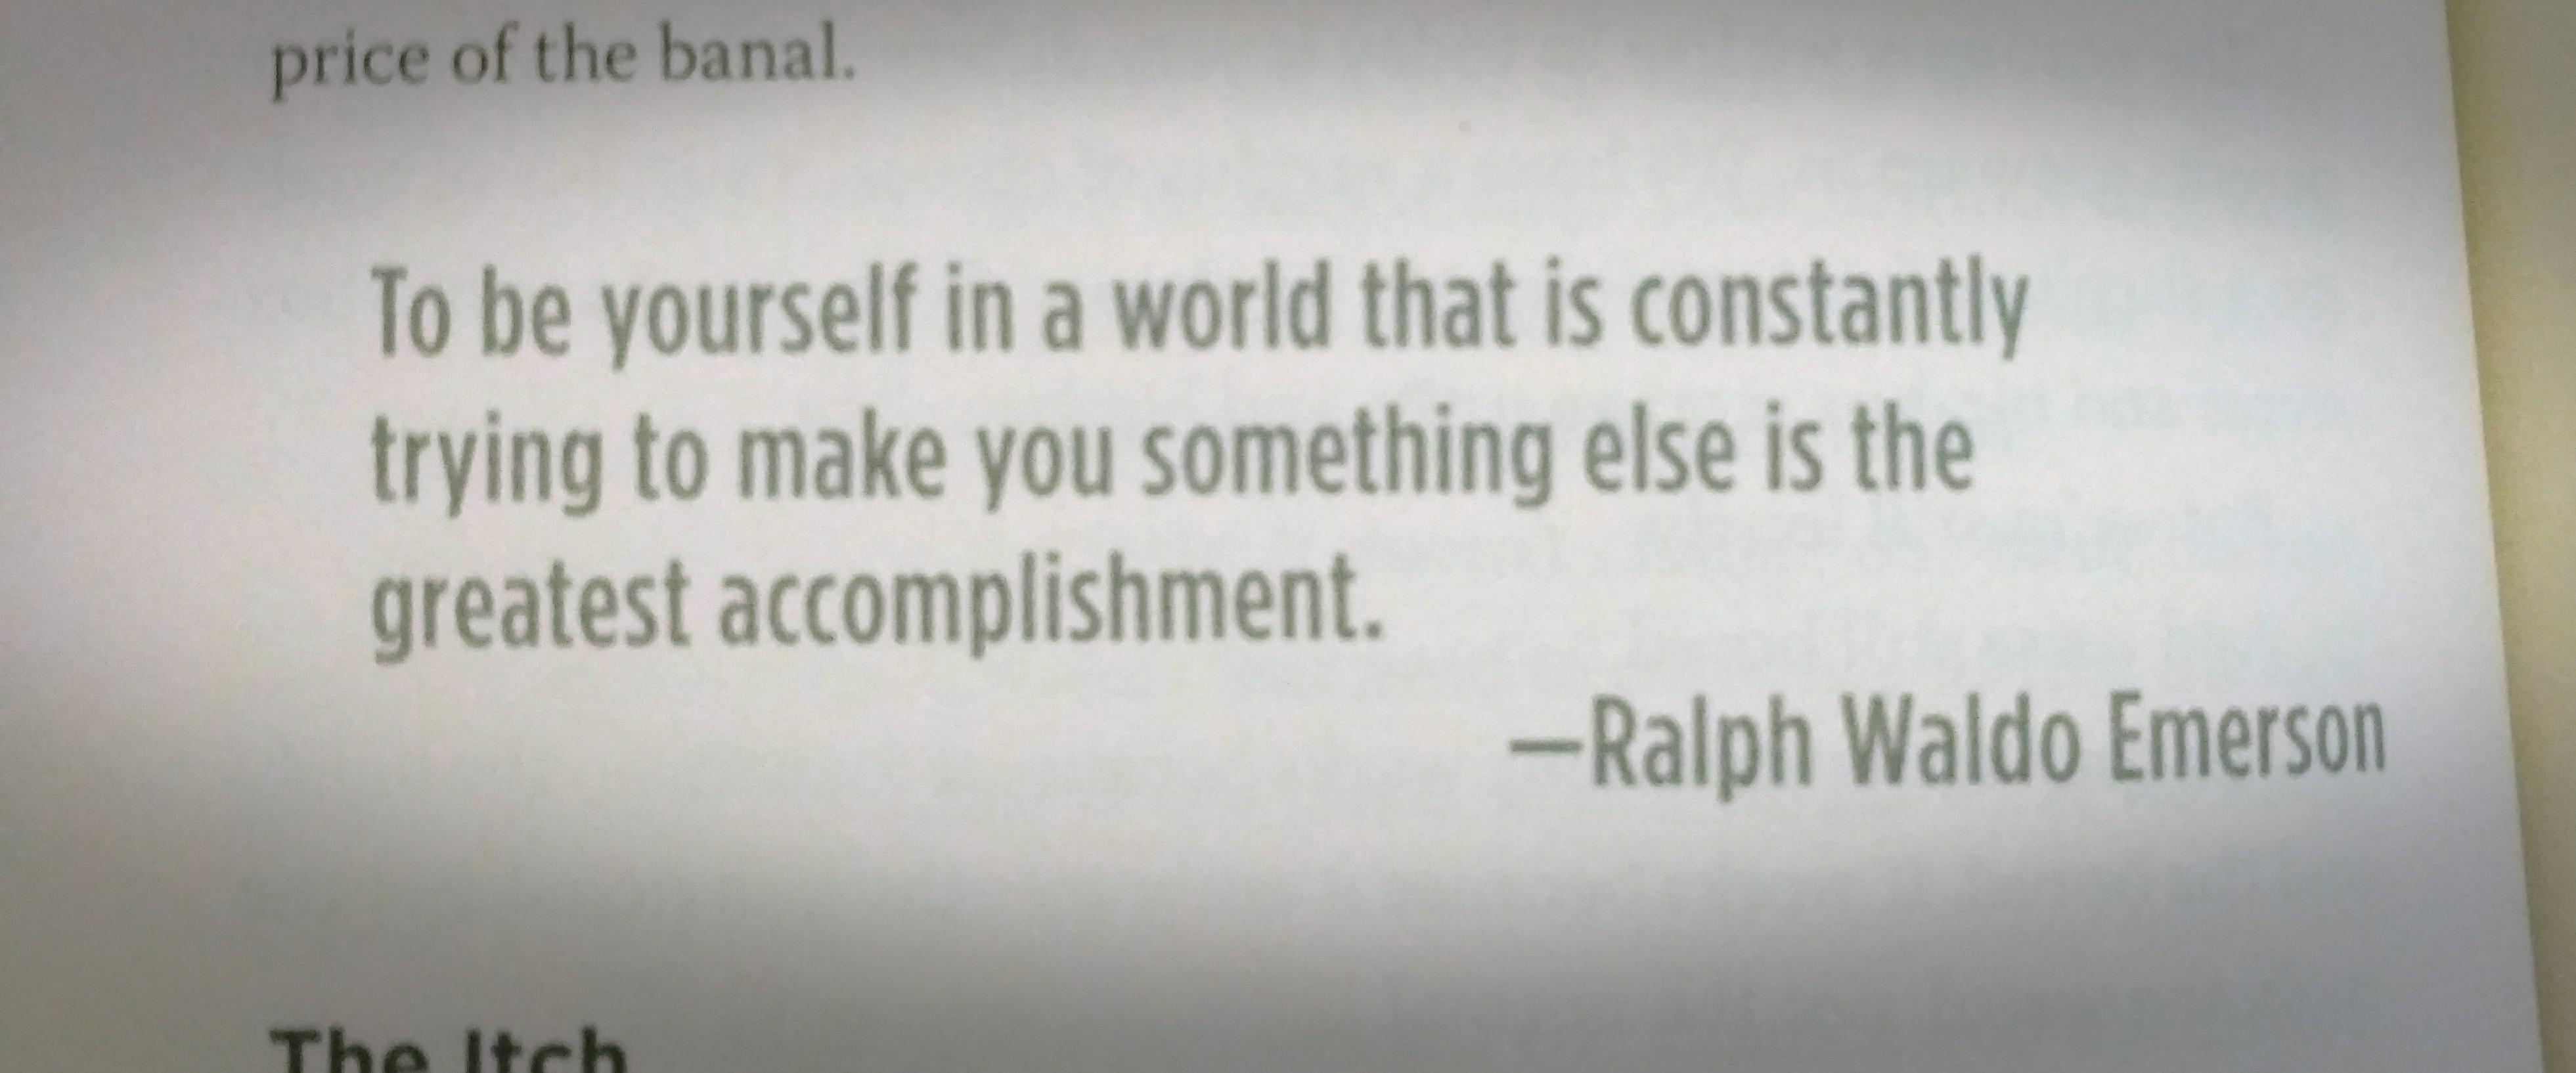 """[image] """"To be yourself…is the greatest accomplishment"""""""